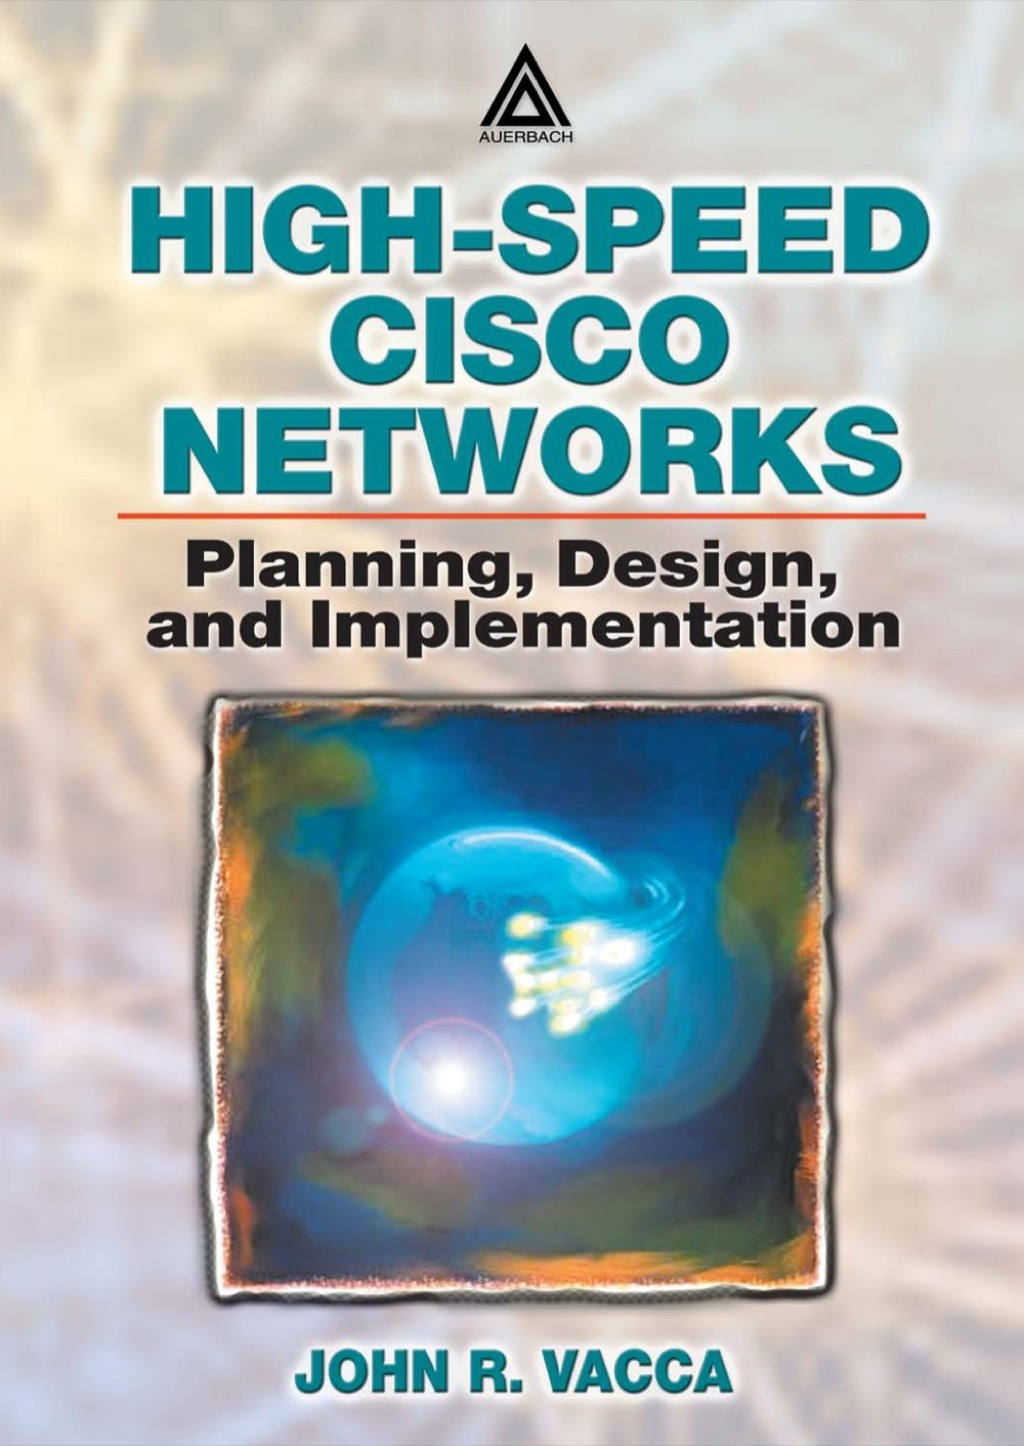 ISBN 9781420000061 product image for High-Speed Cisco Networks (eBook Rental) | upcitemdb.com